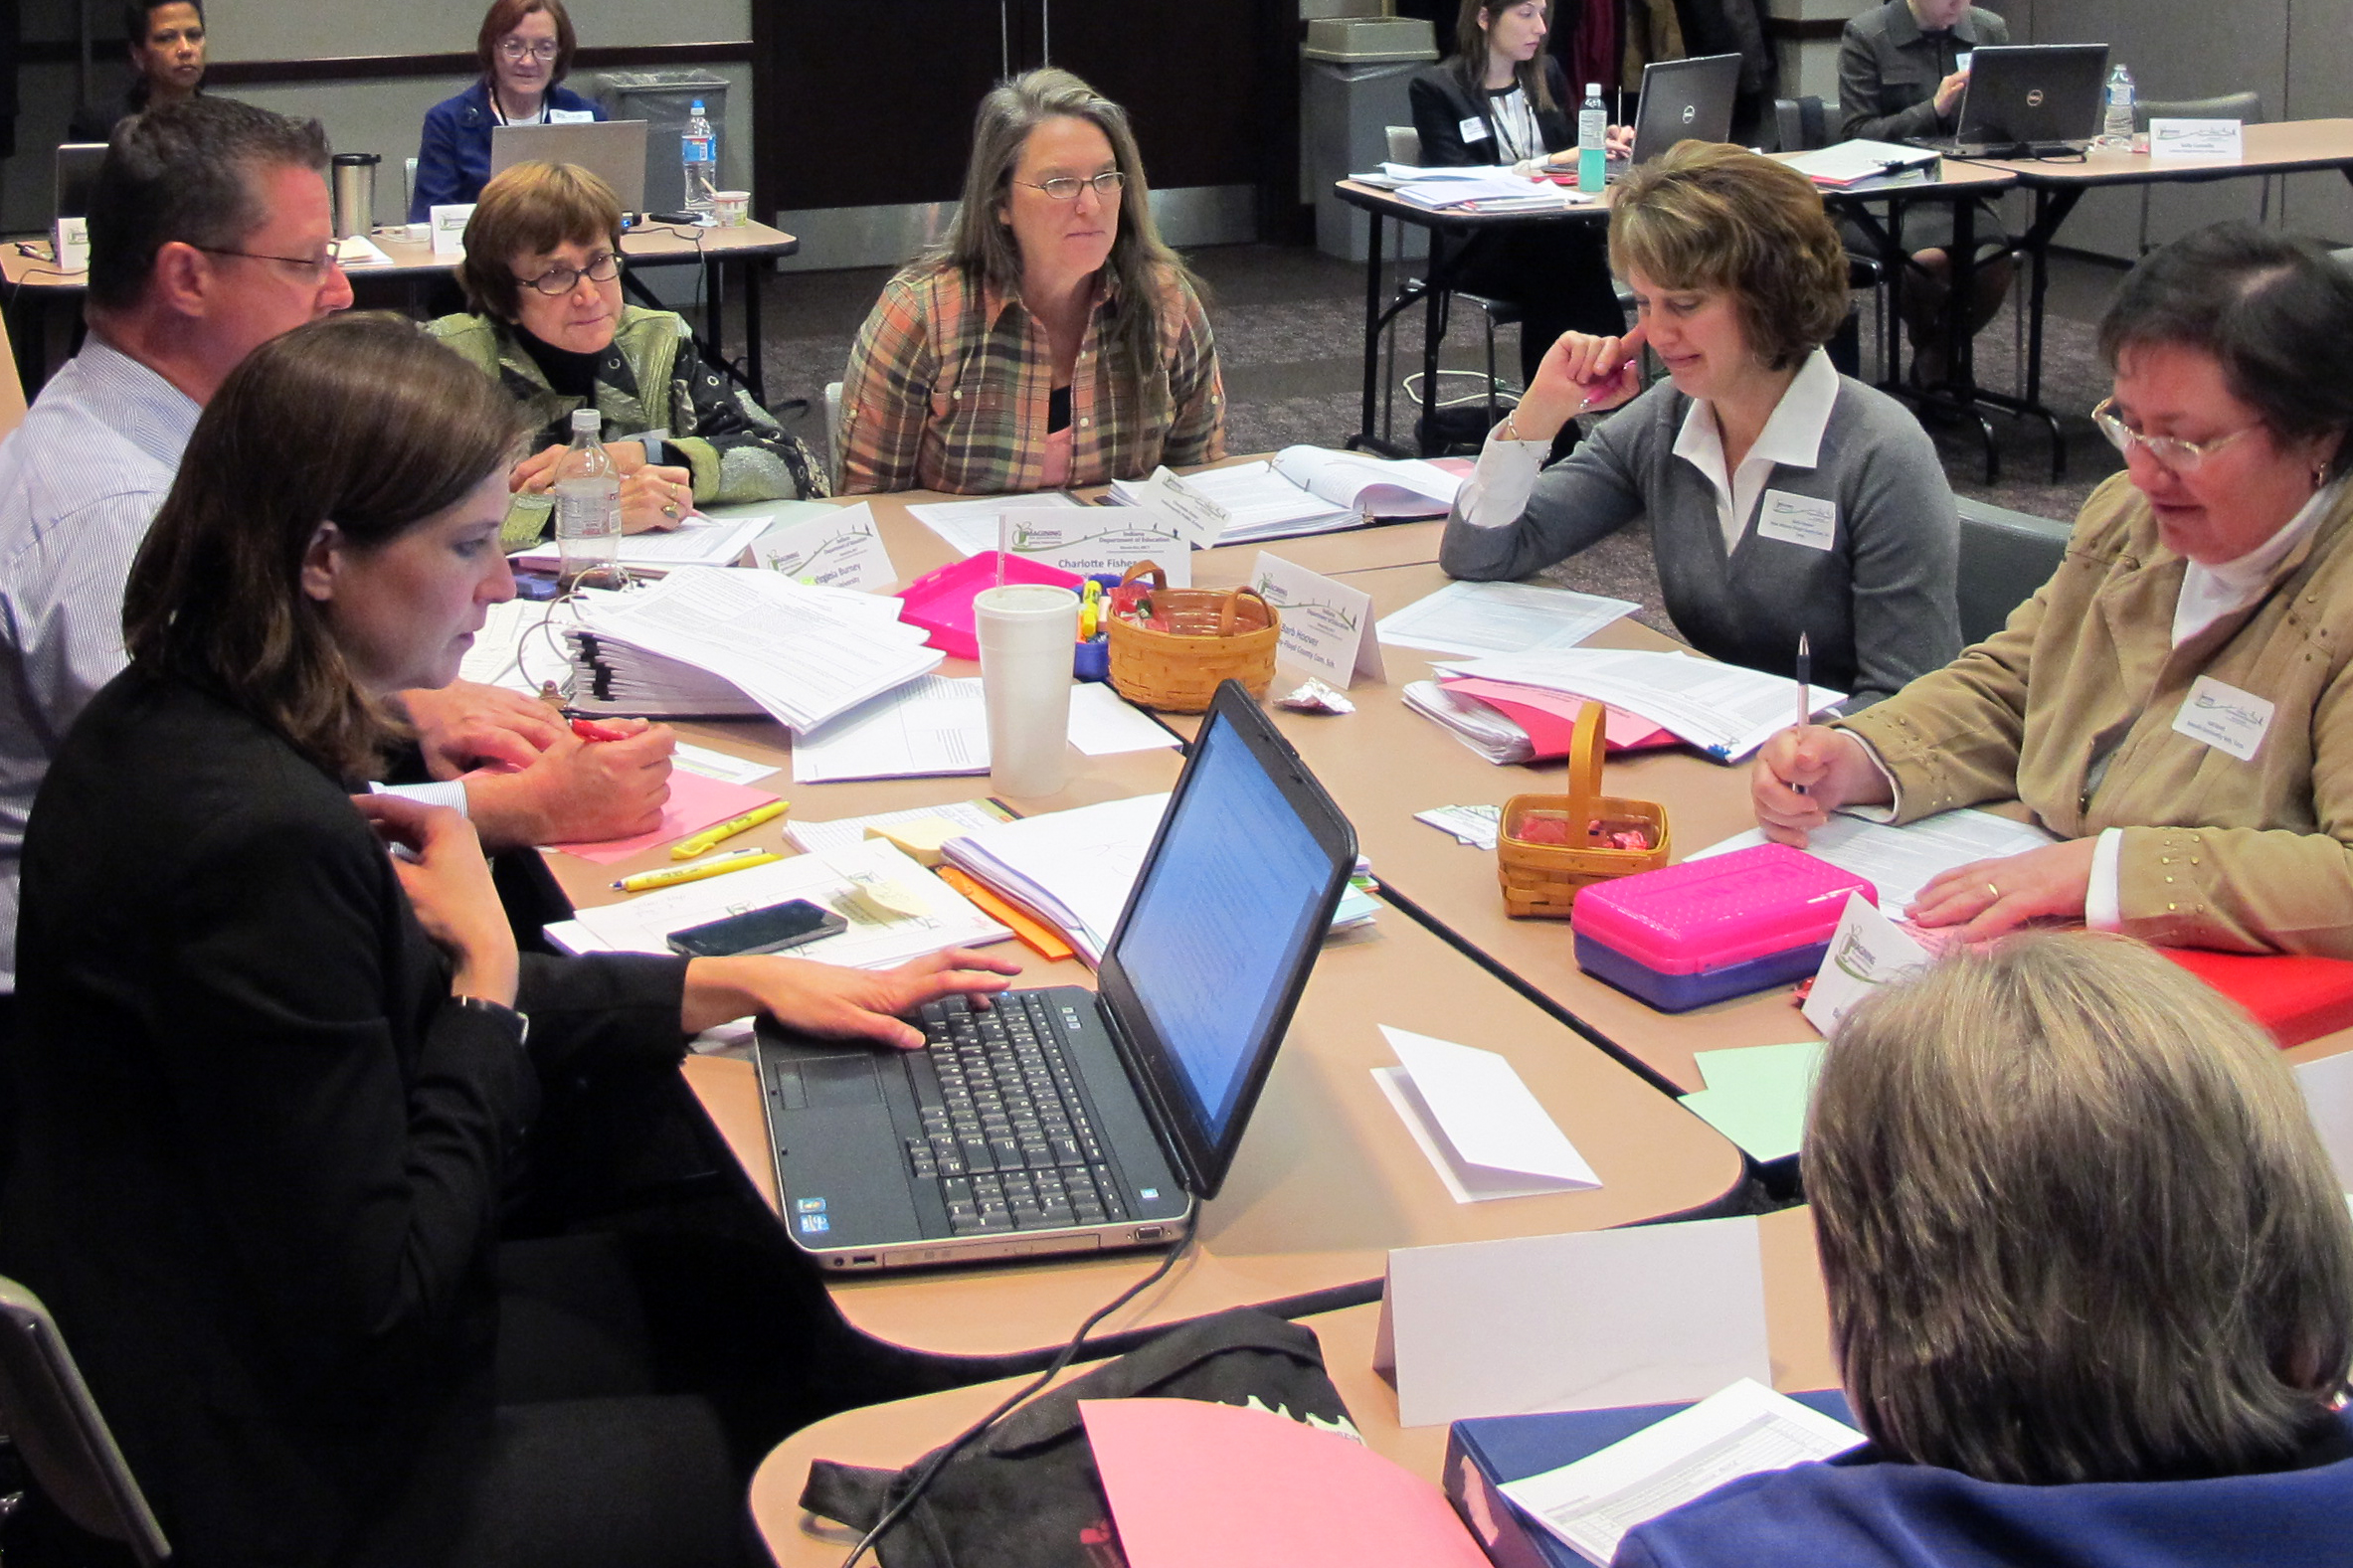 K-12 educators and subject matter experts reviewed the state's academic standards during a two-day workshop in Indianapolis last week.